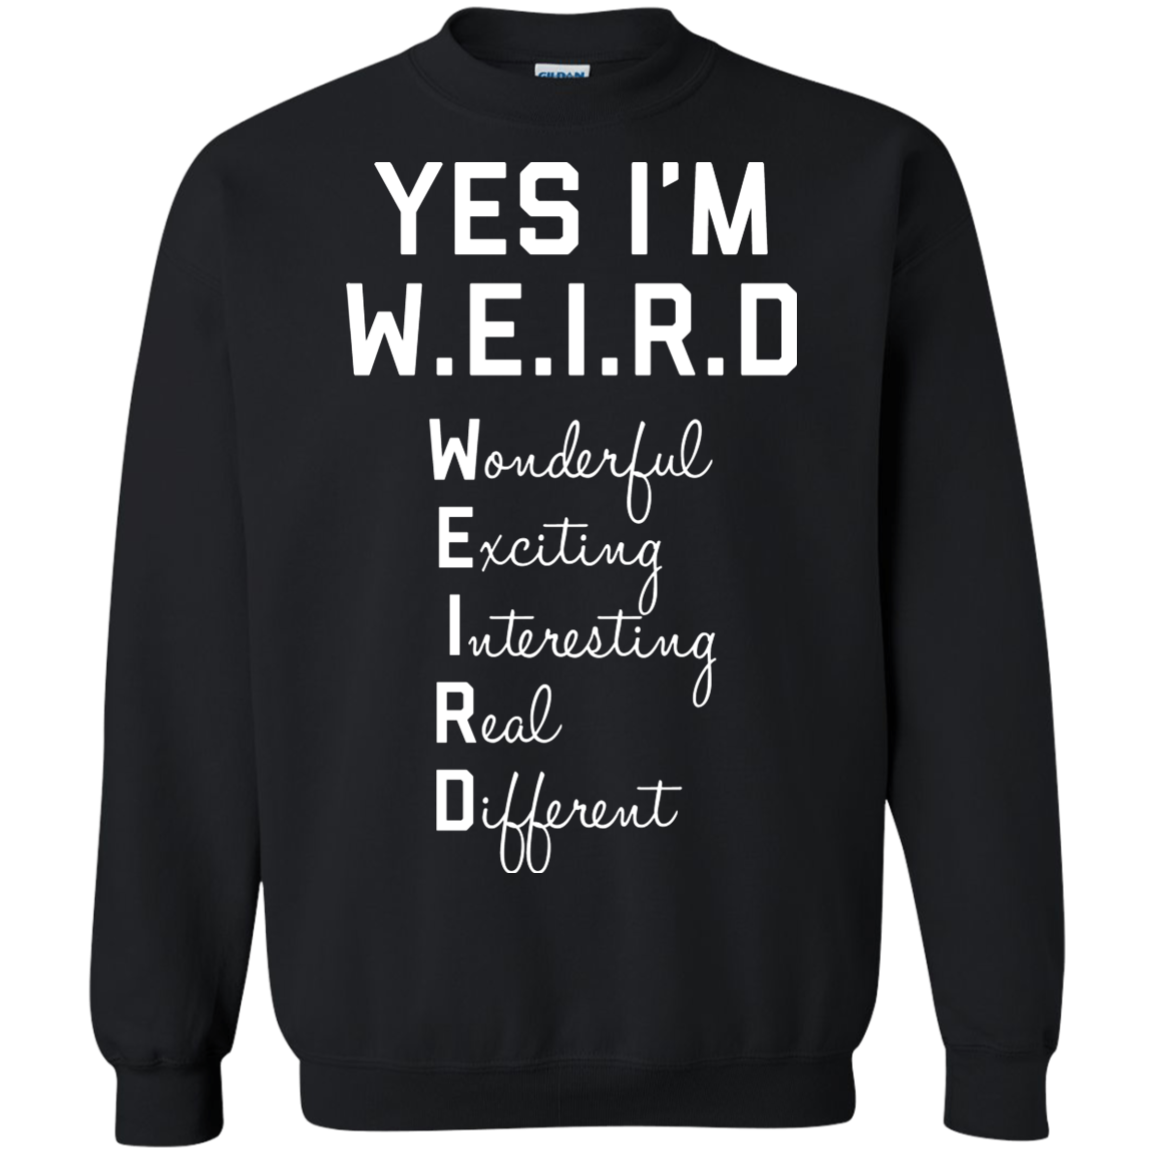 Yes Im W E I R D T Shirts Hoodies Sweatshirts Available Funny Weird Shirts Funny Outfits Weird Shirts Funny Hoodies